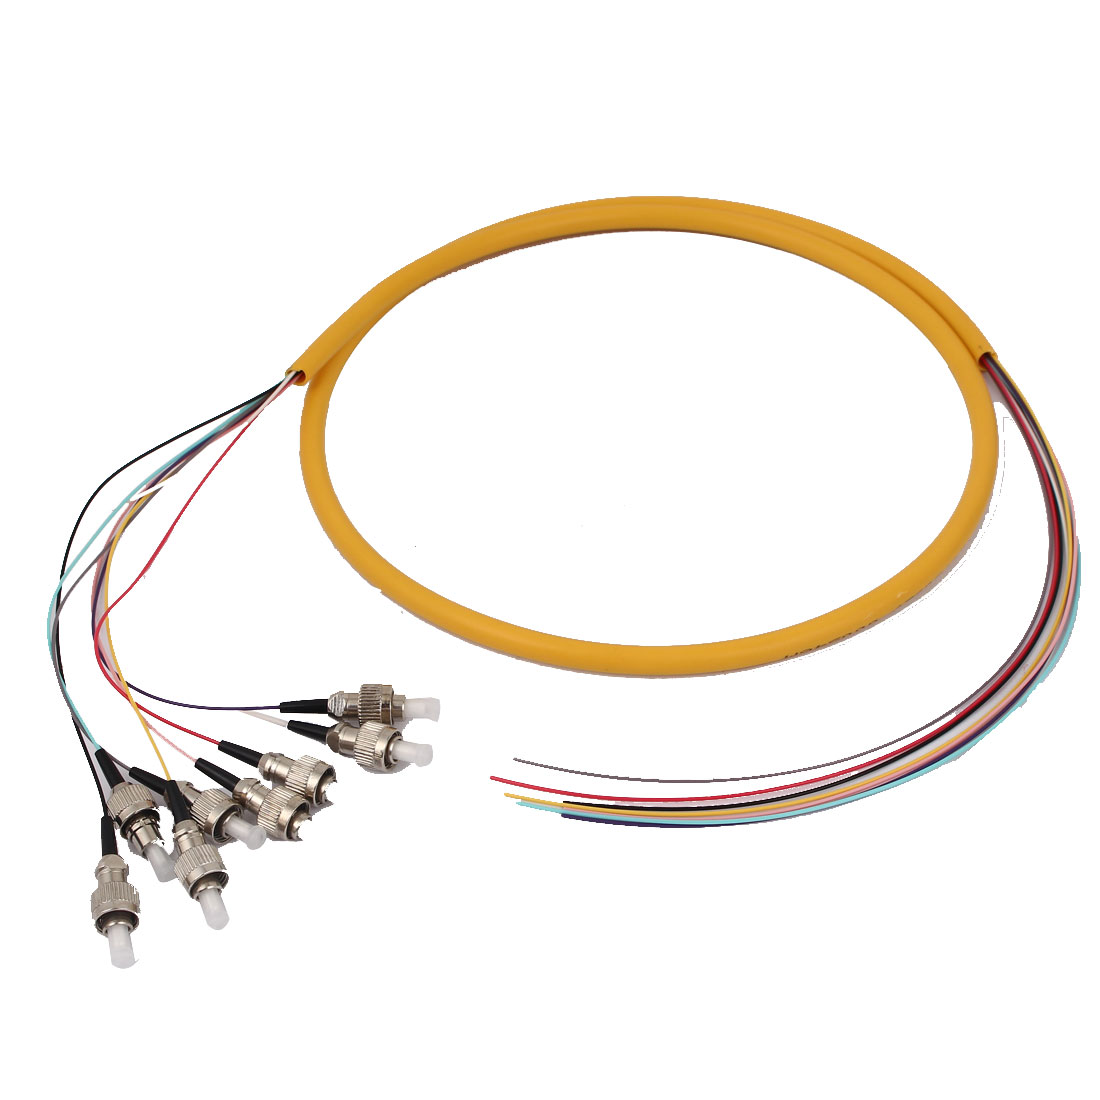 Single Mode ST to FC Optical Fiber Patch Cable Connector 1.5m Length